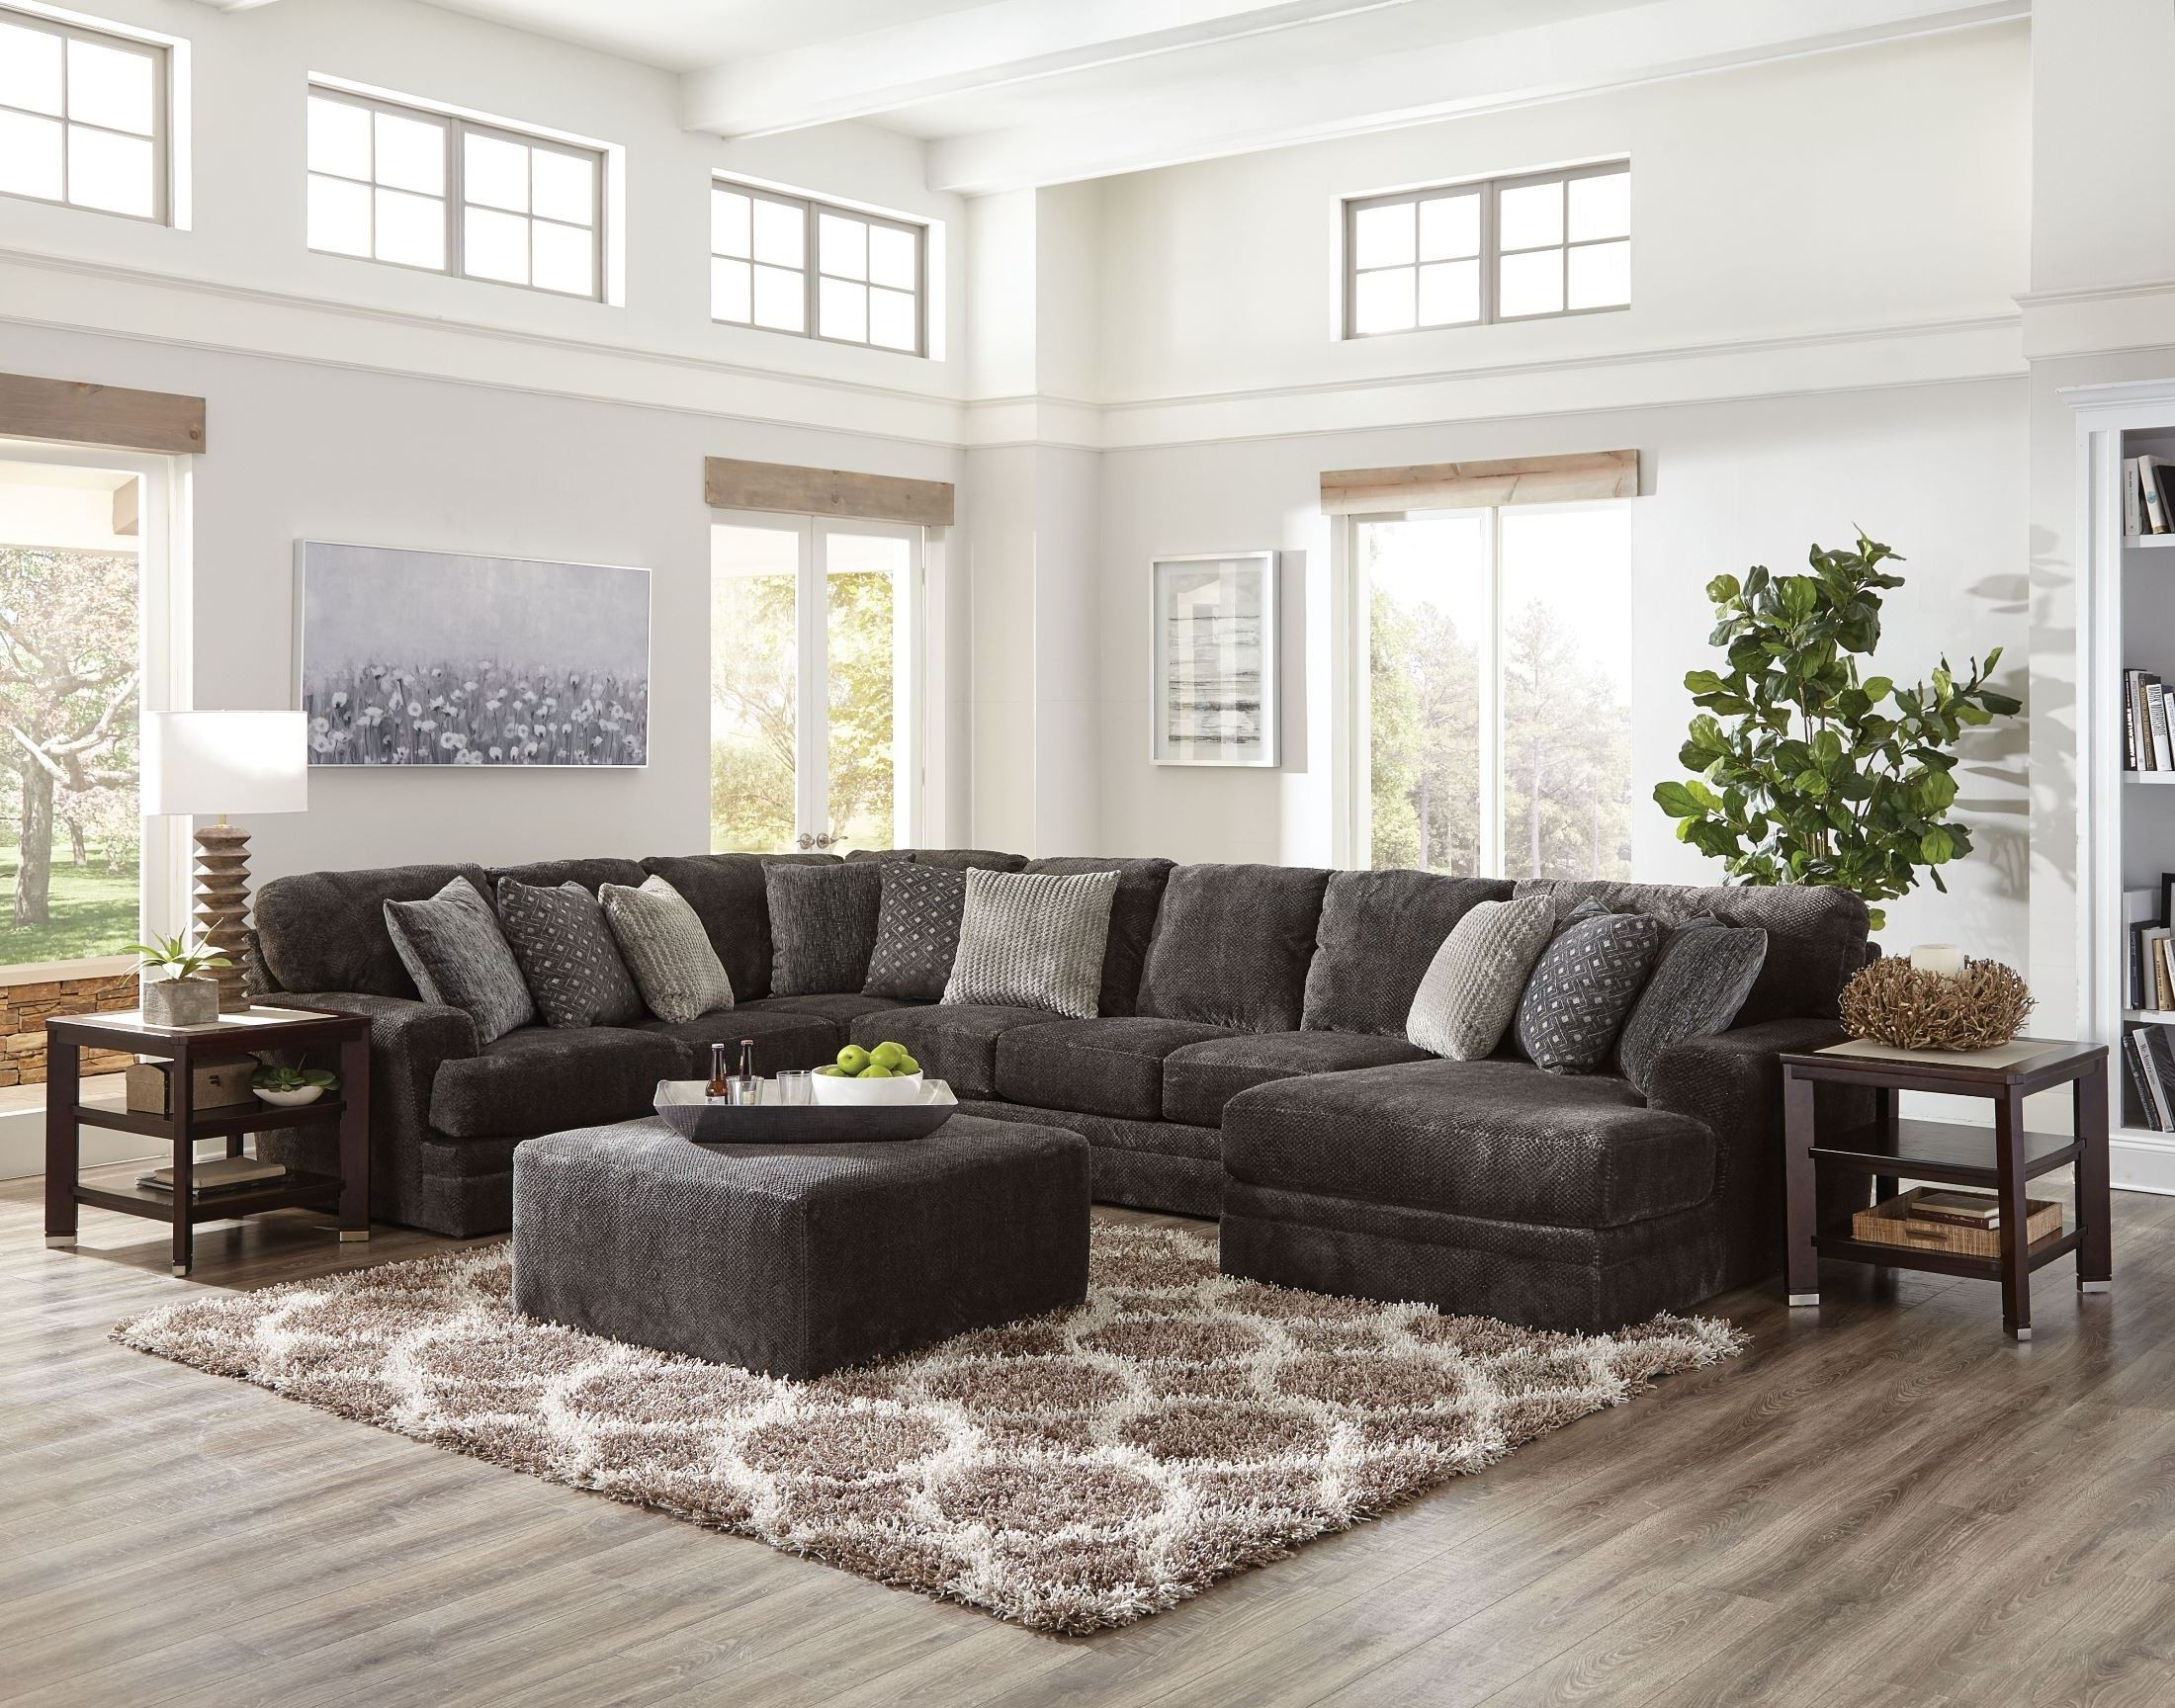 Coleman Furniture Regarding Avery 2 Piece Sectionals With Raf Armless Chaise (View 4 of 20)